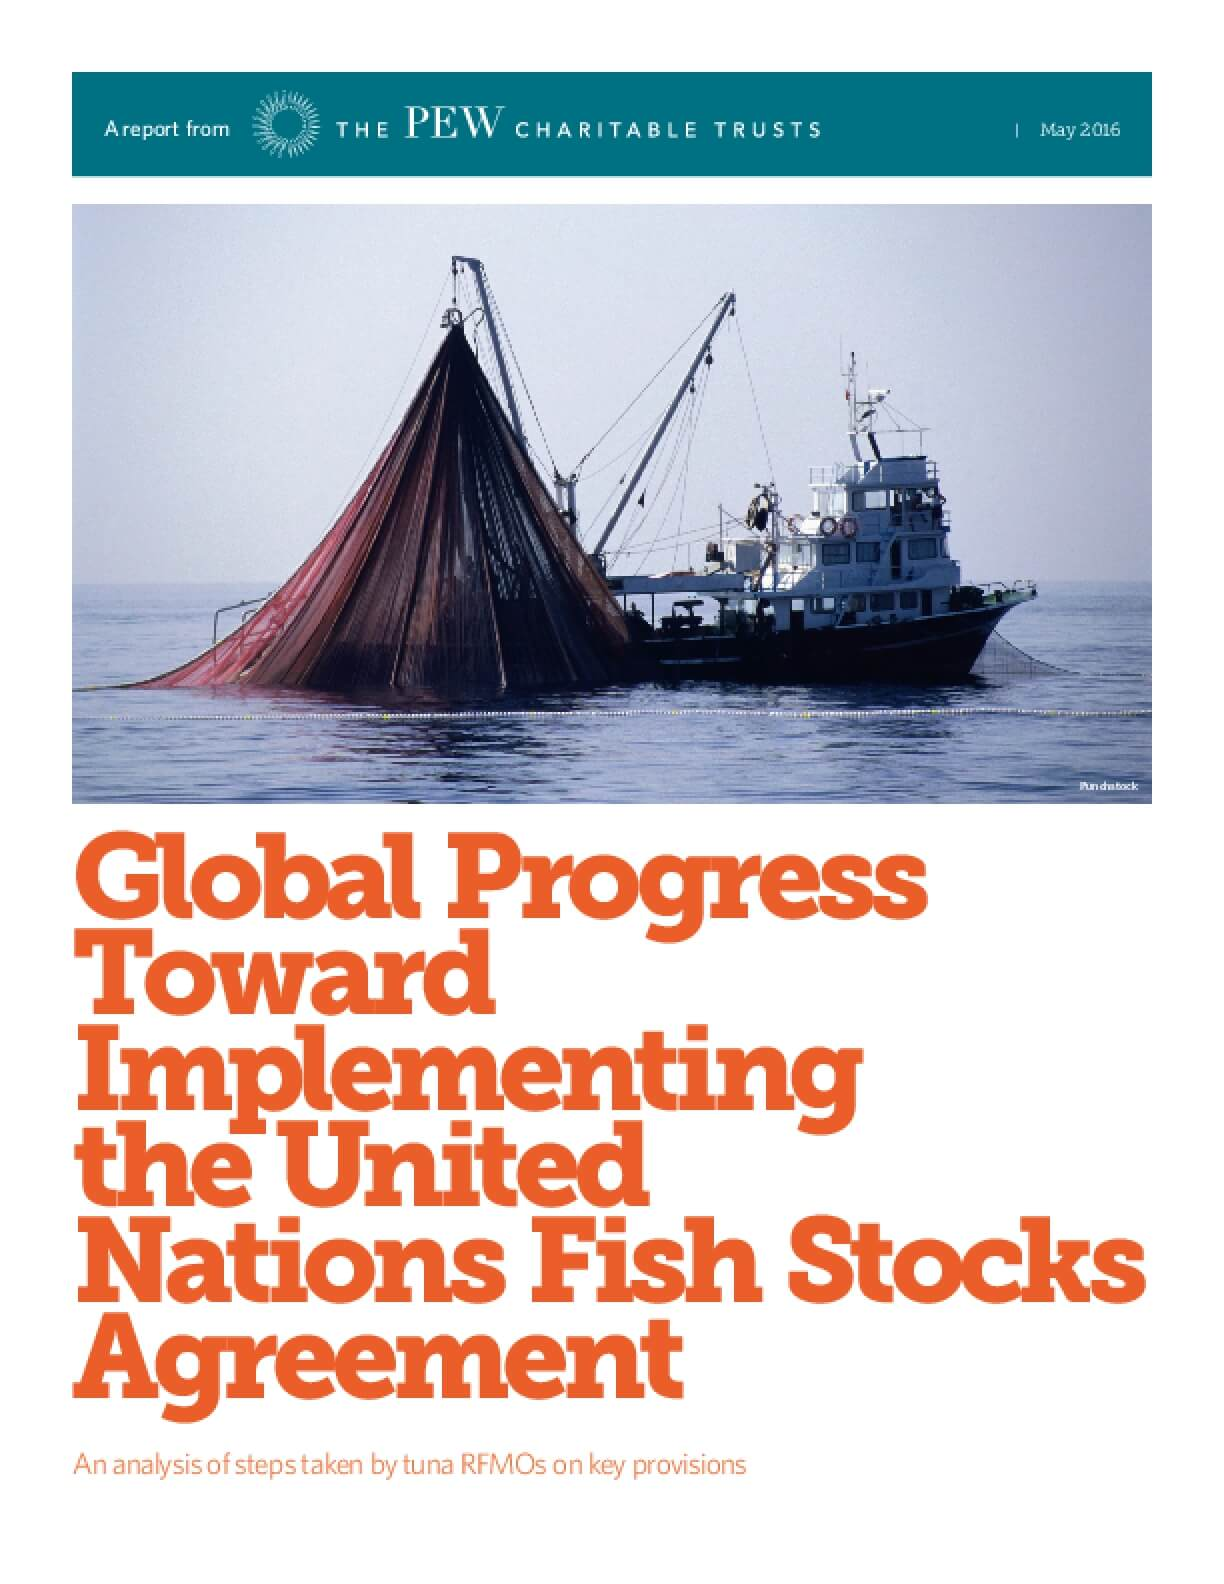 Global Progress Toward Implementing the United Nations Fish Stocks Agreement